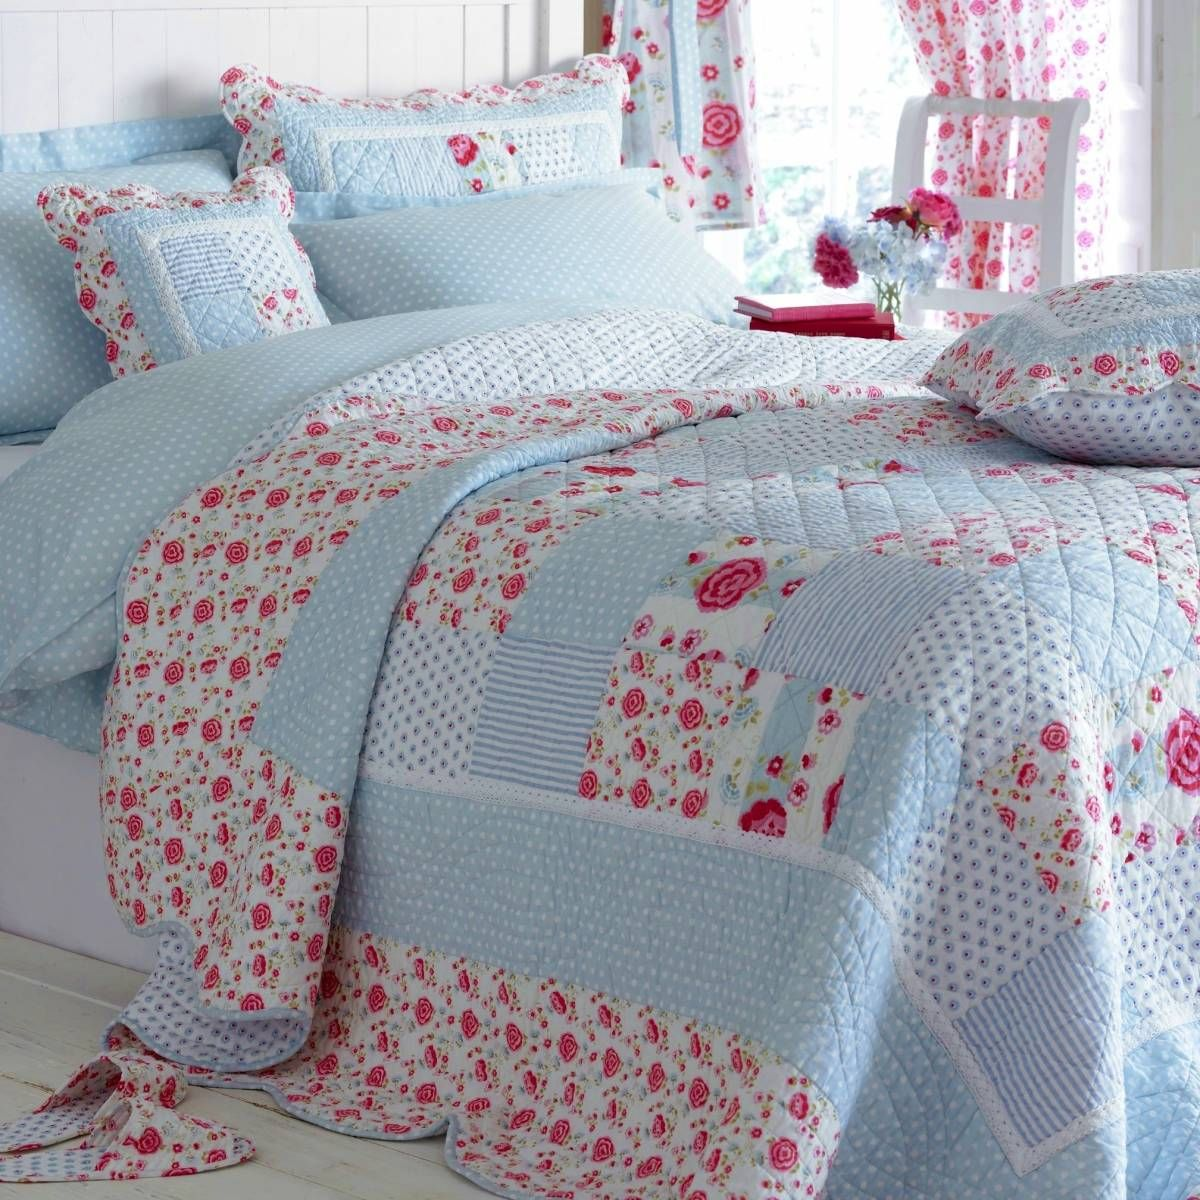 quilts | Home › Childrens › Girls Bedding › Catherine Patchwork ... : childrens patchwork quilt - Adamdwight.com